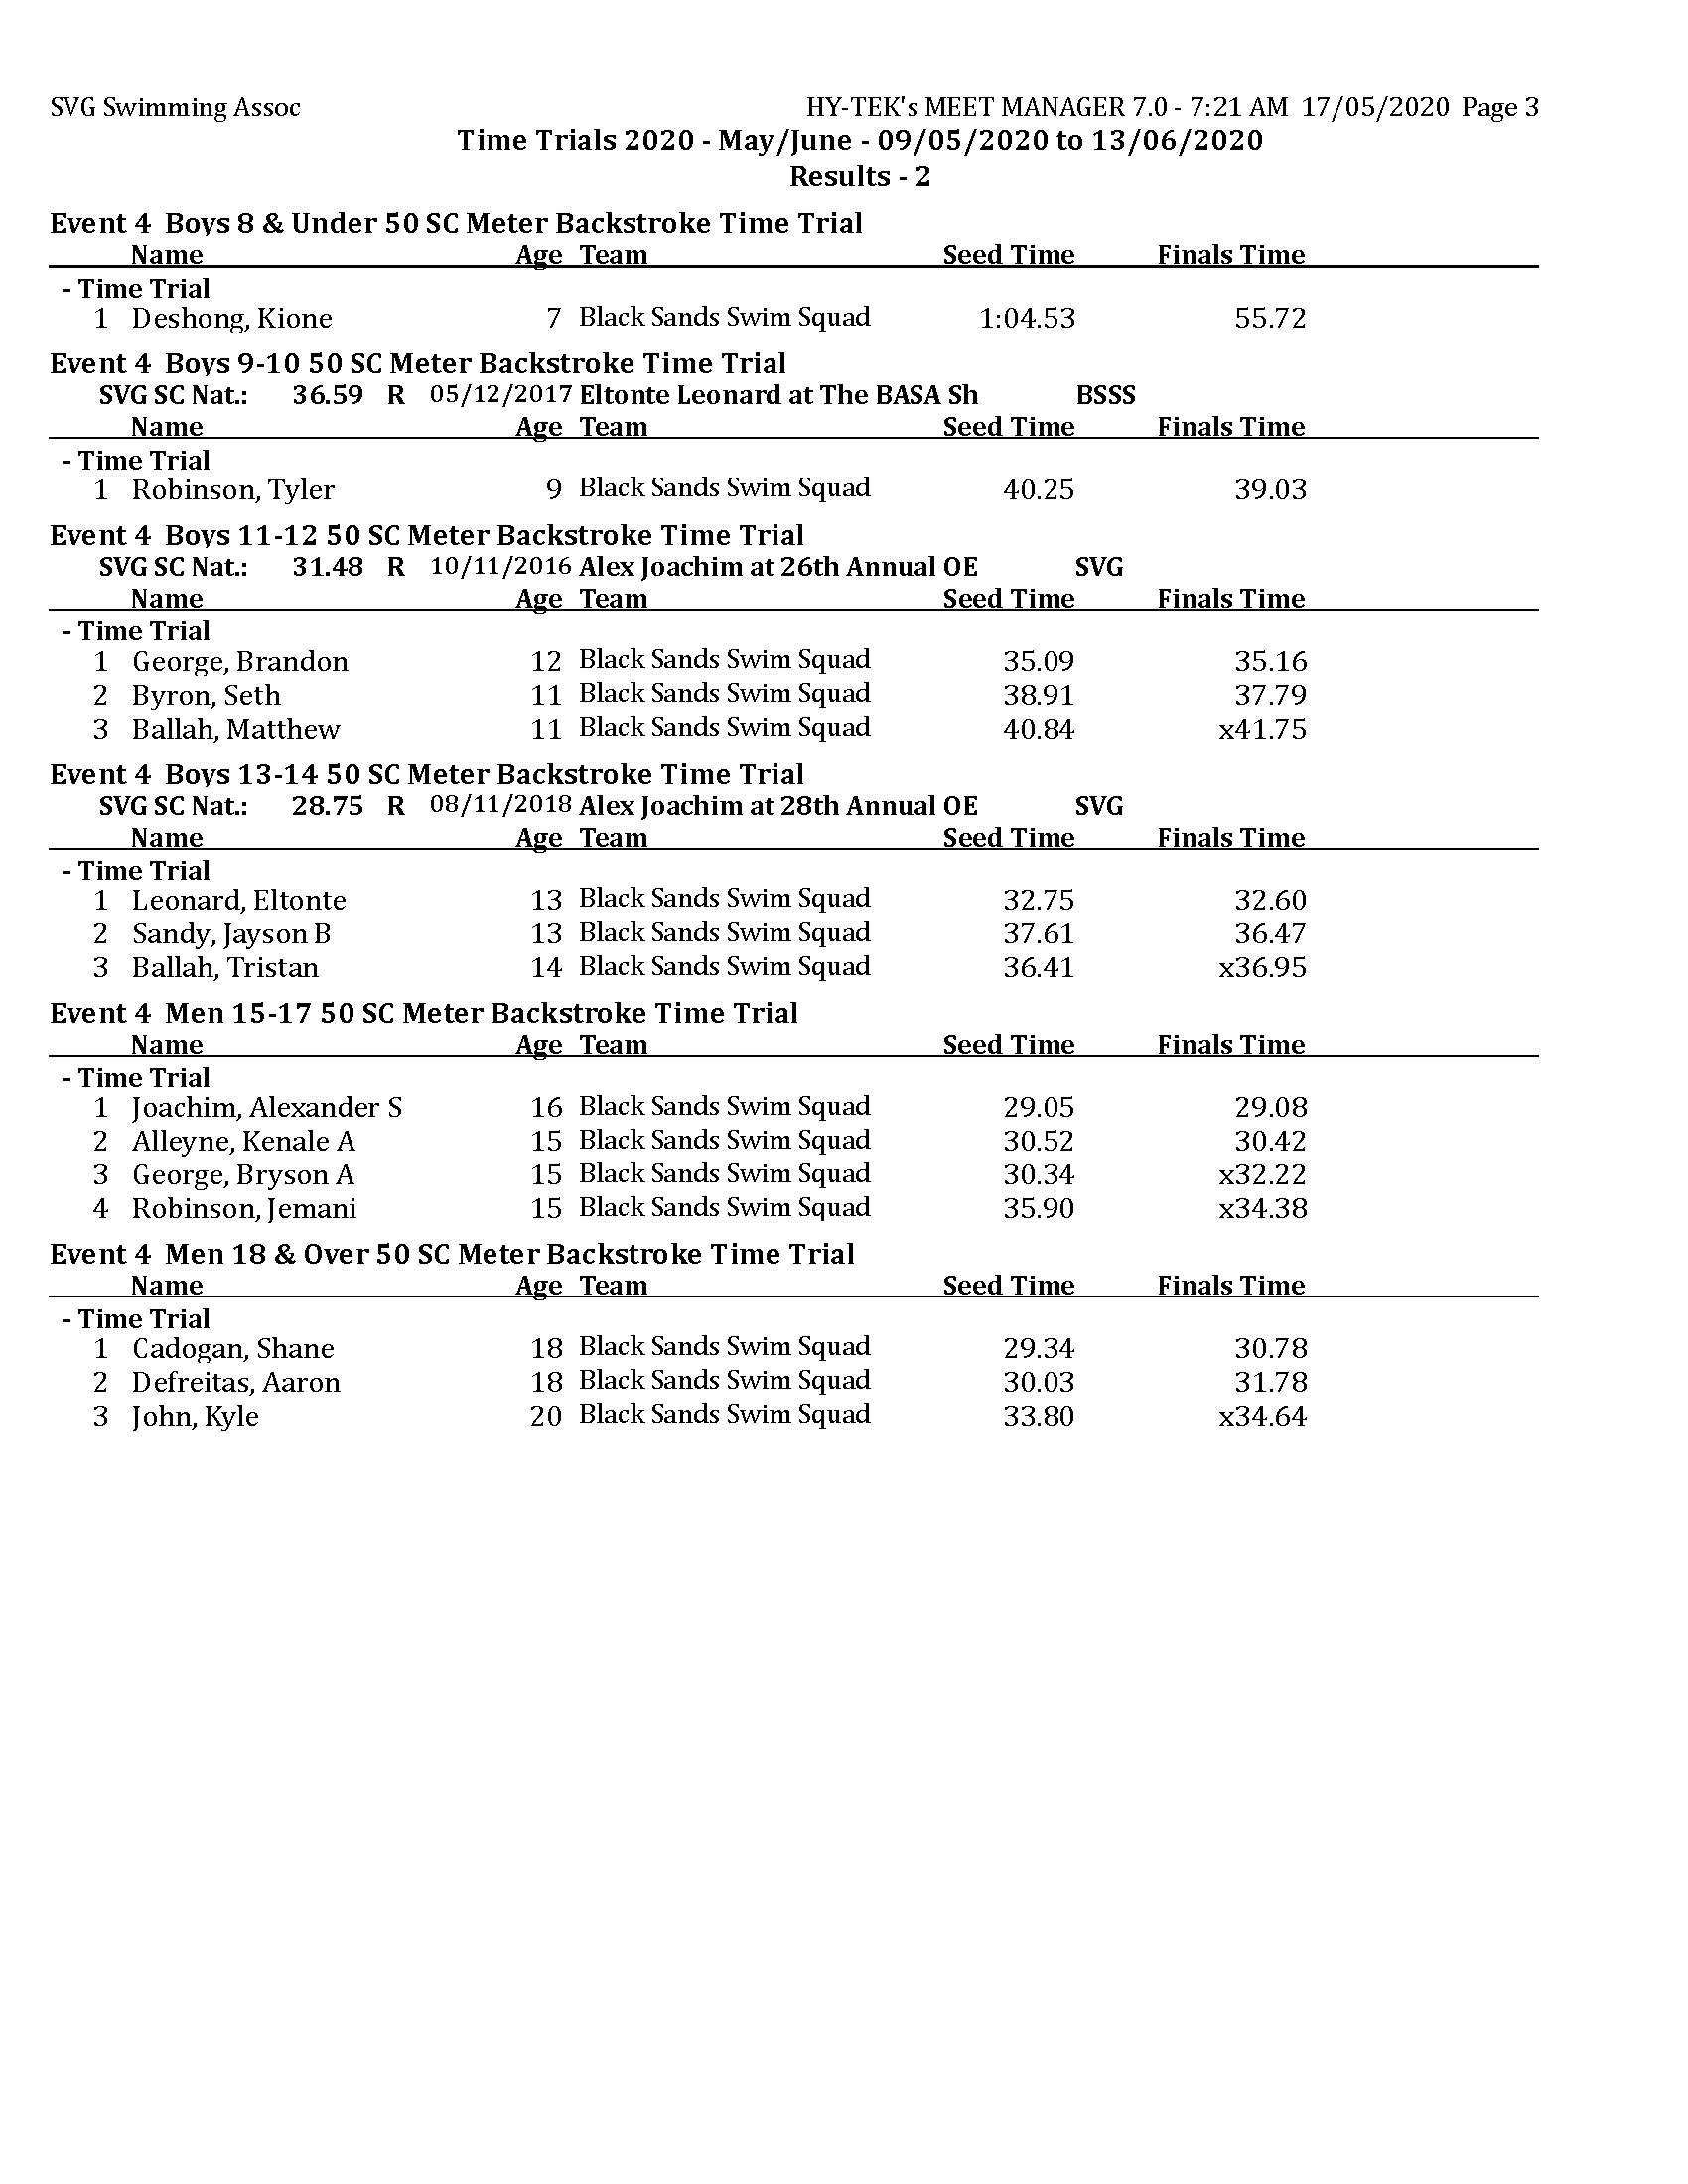 TT 2020 - May - Results day 2 MM_Page_3